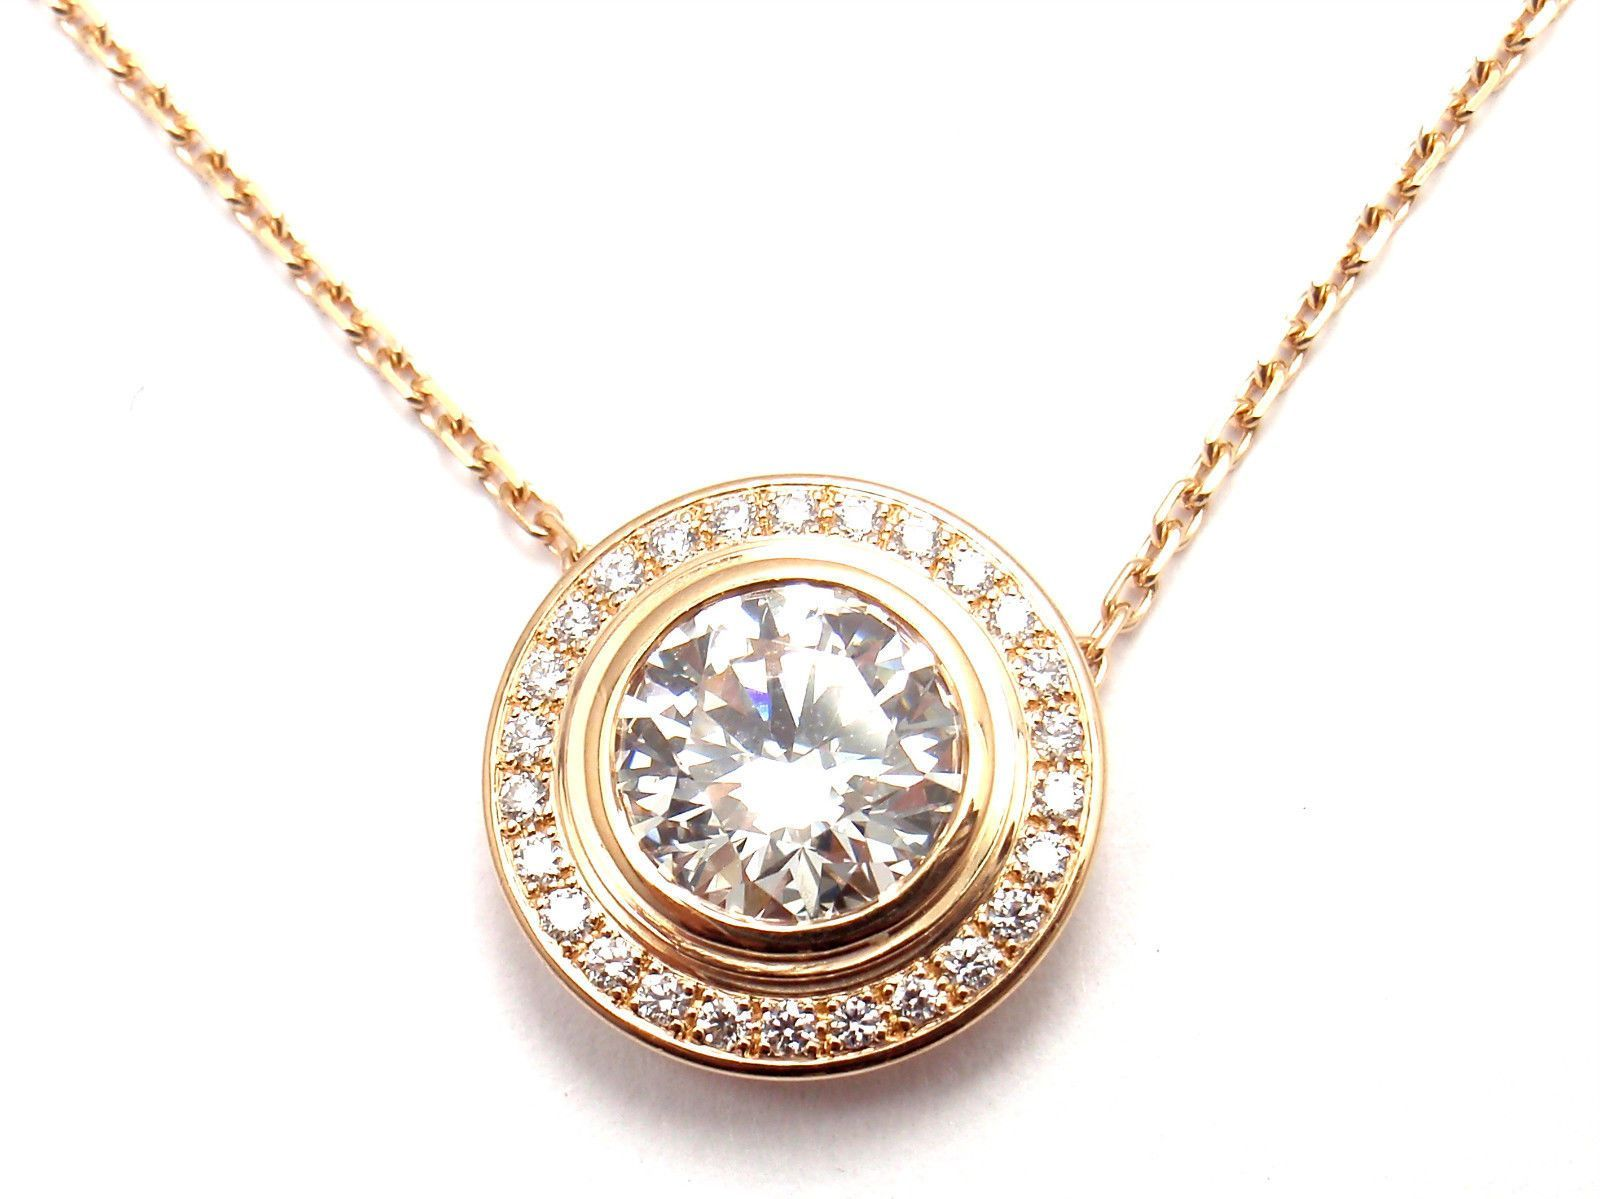 f265a71a0 Cartier D'Amour 18k Rose Gold 1.04ct Diamond Pendant Necklace GIA | Fortrove